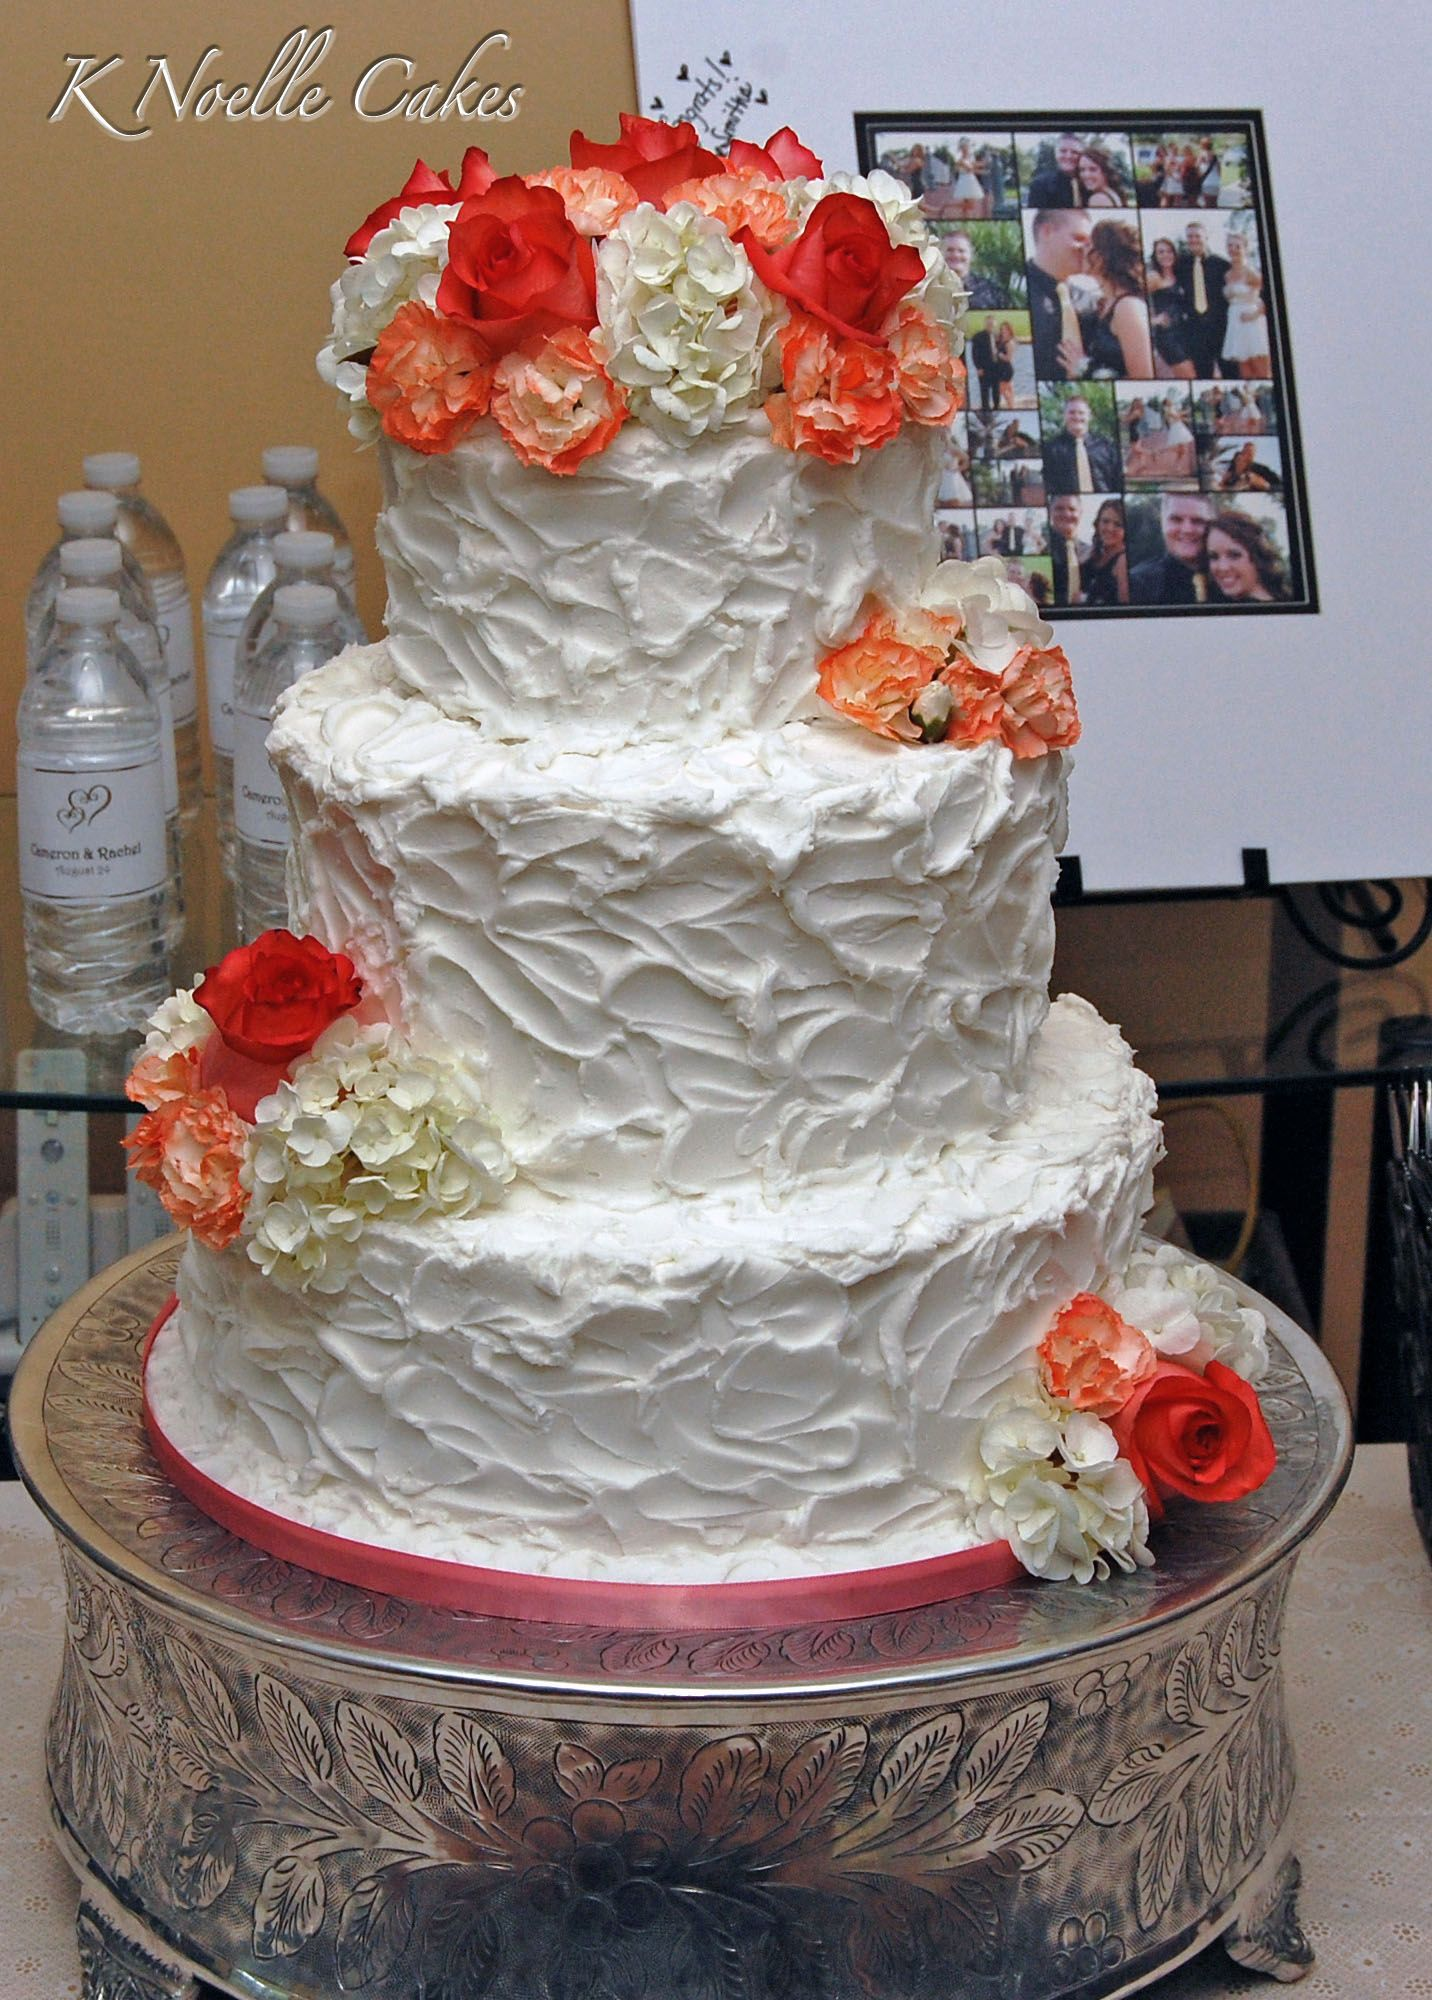 Floral themed wedding cake by K Noelle Cakes